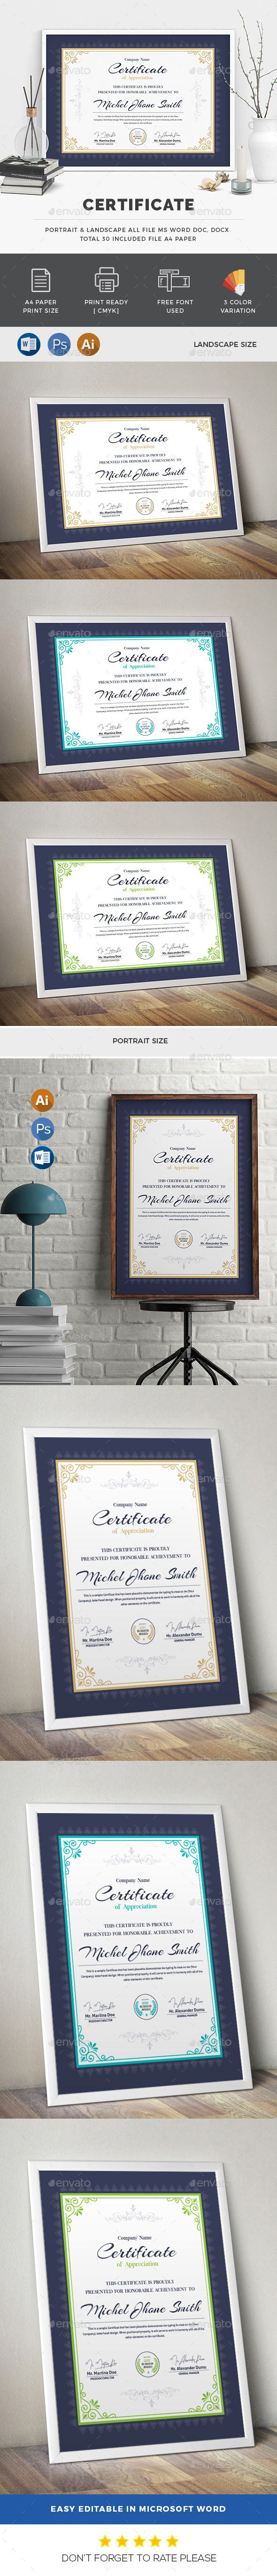 Certificate Template PSD, Vector EPS, AI, MS Word | Certificate ...